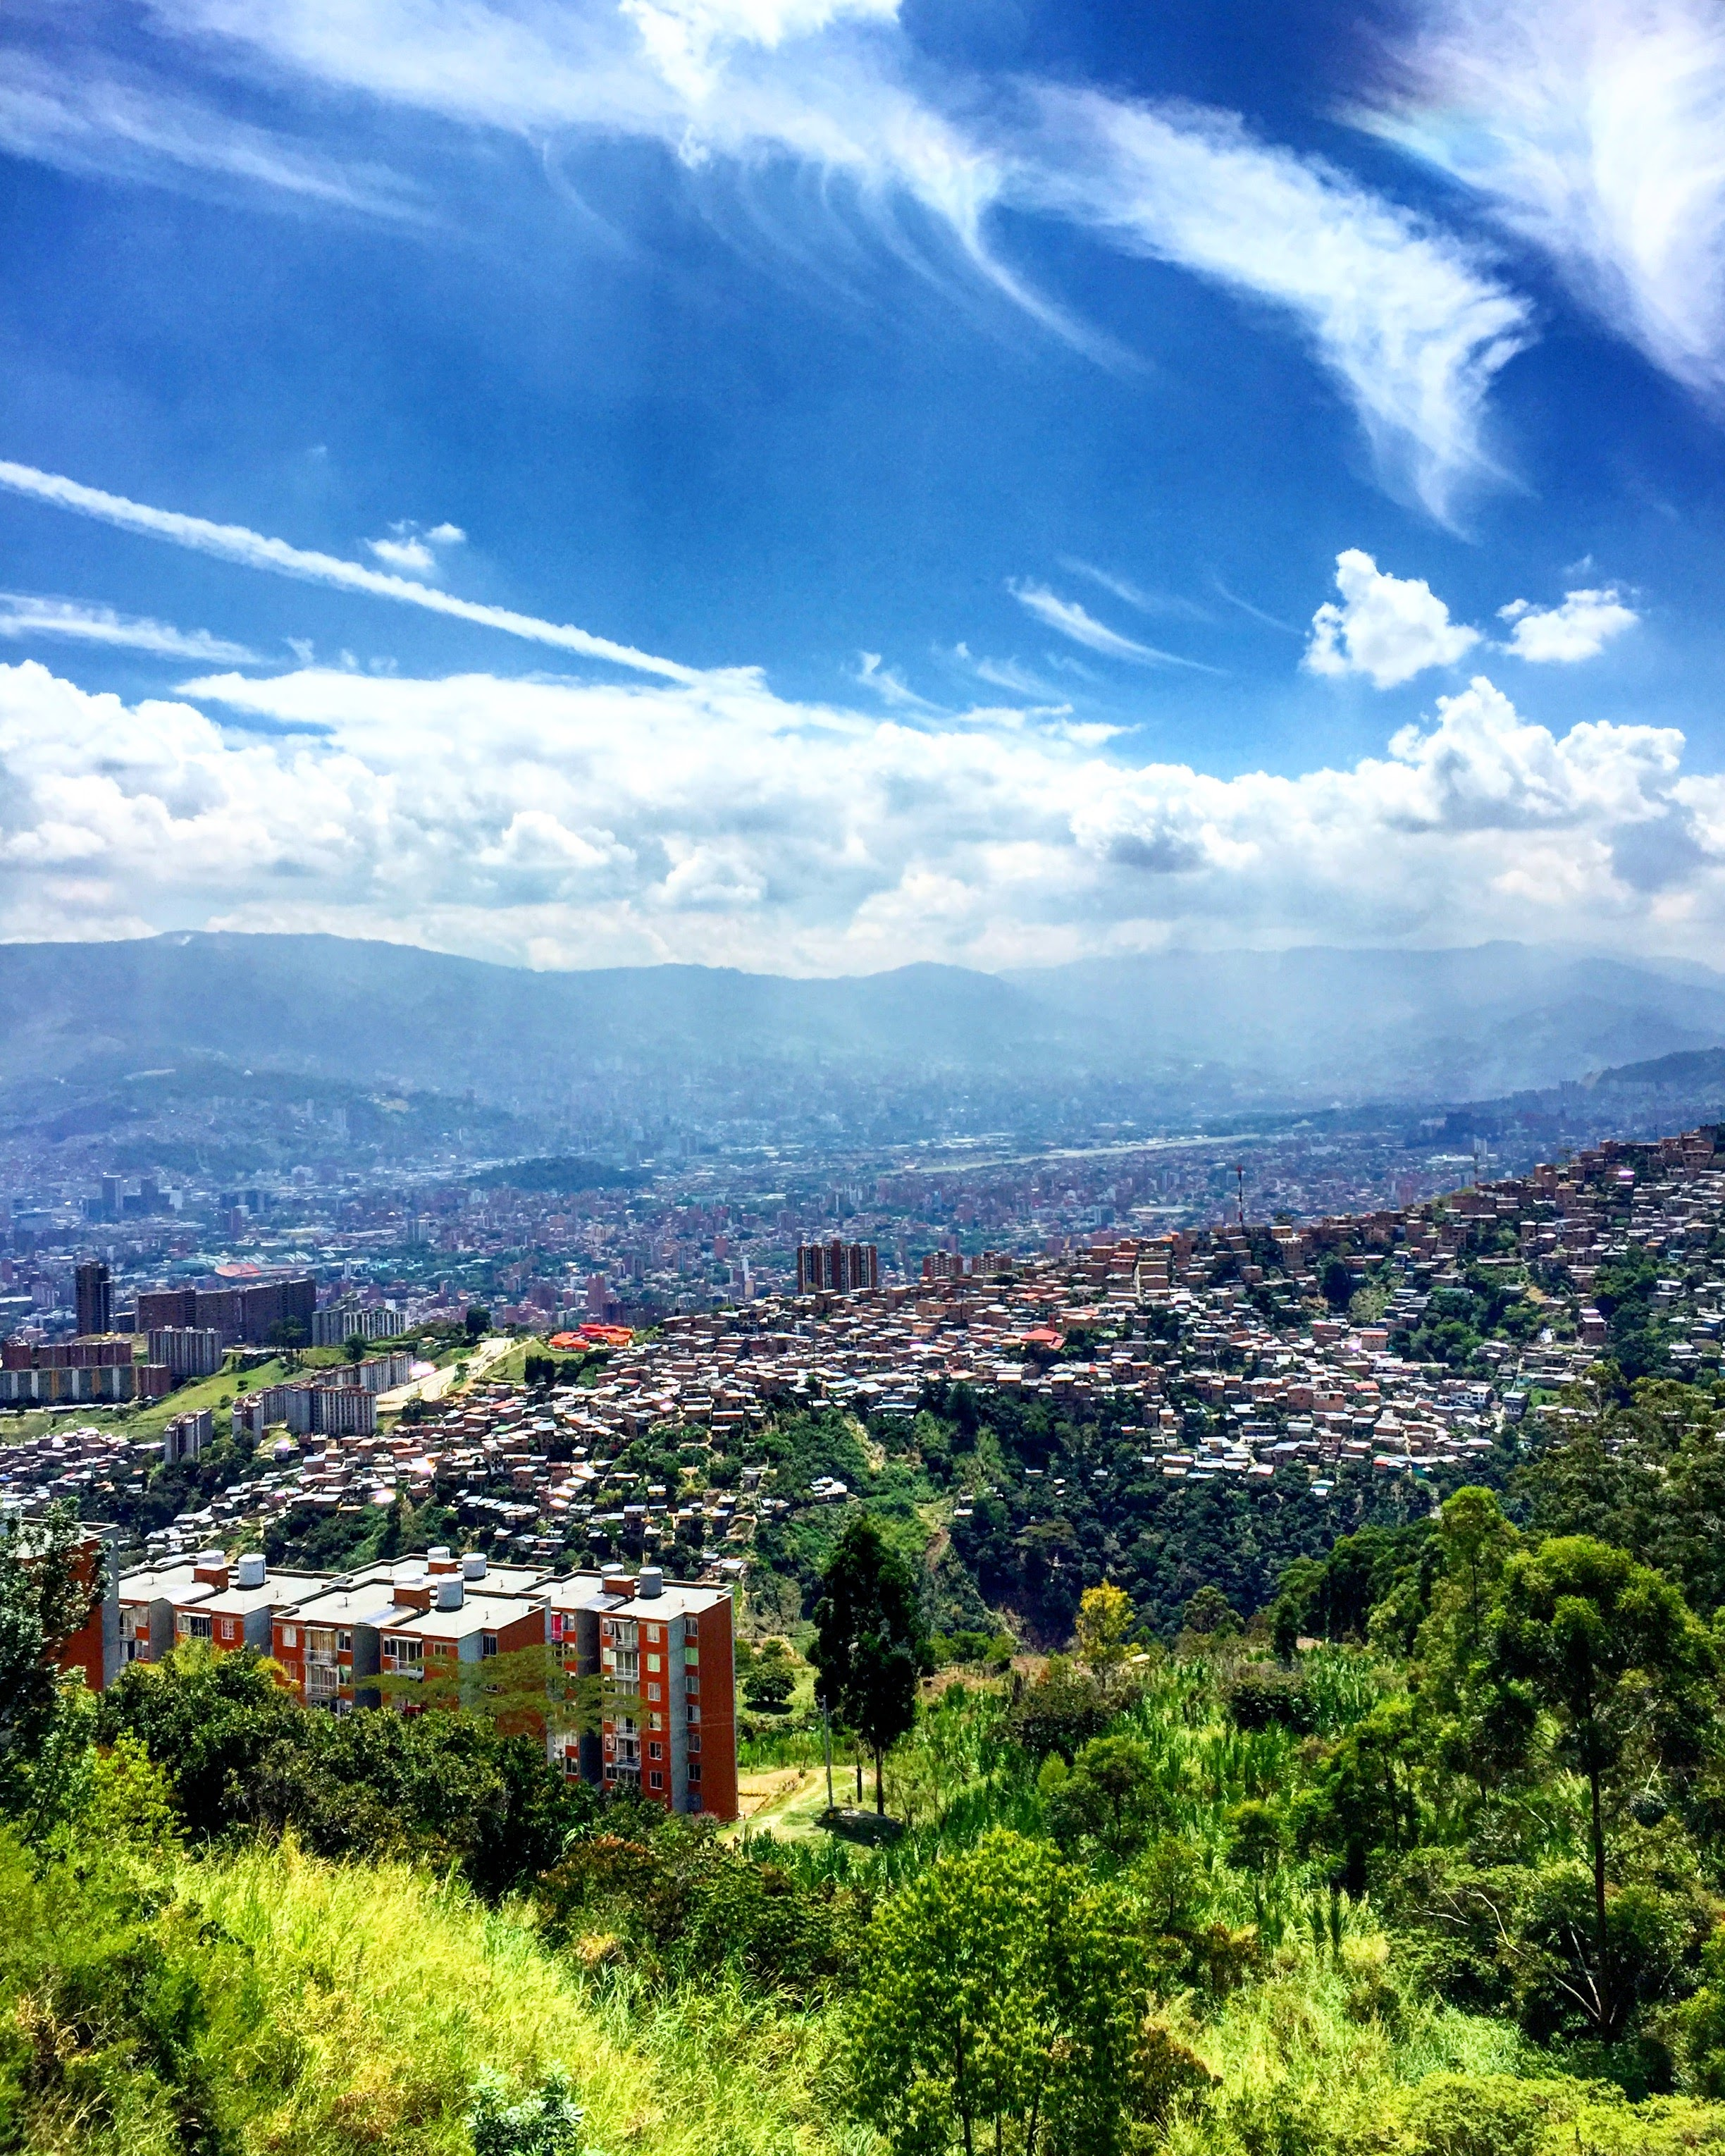 View of Medellín, Colombia